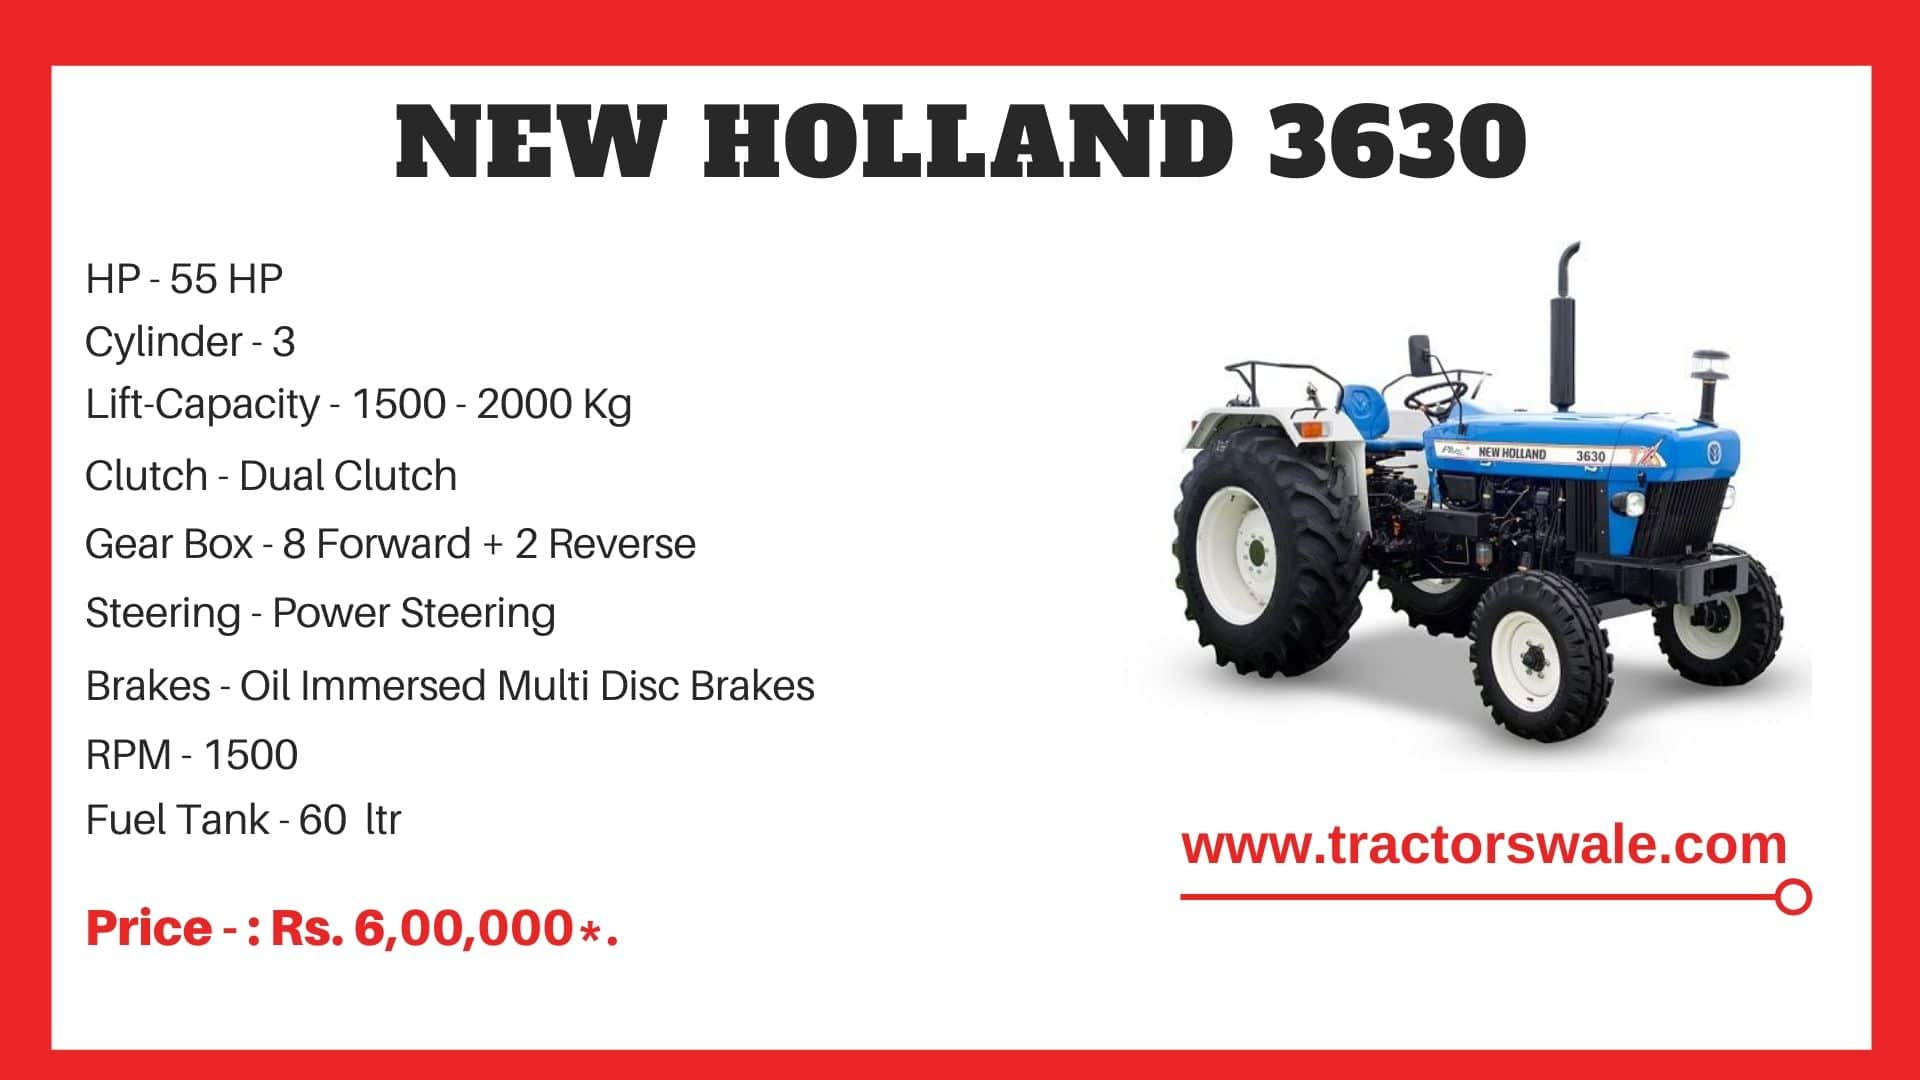 New Holland 3630 tractor